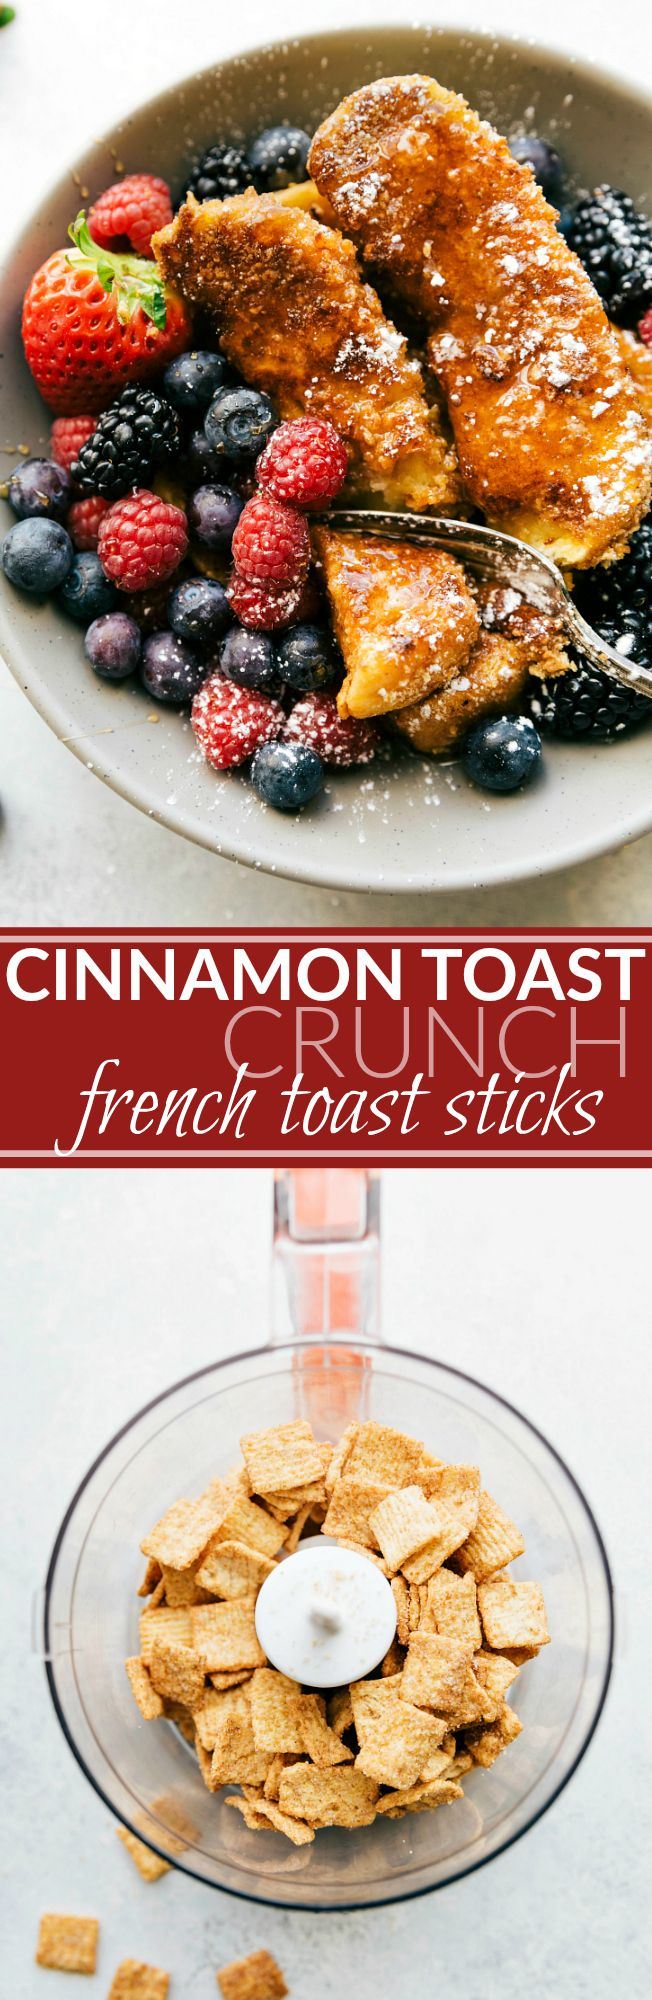 CINNAMON TOAST CRUNCH coated French Toast Sticks! Delicious, easy-to-make, and kid-friendly! via chelseasmessyapron.com